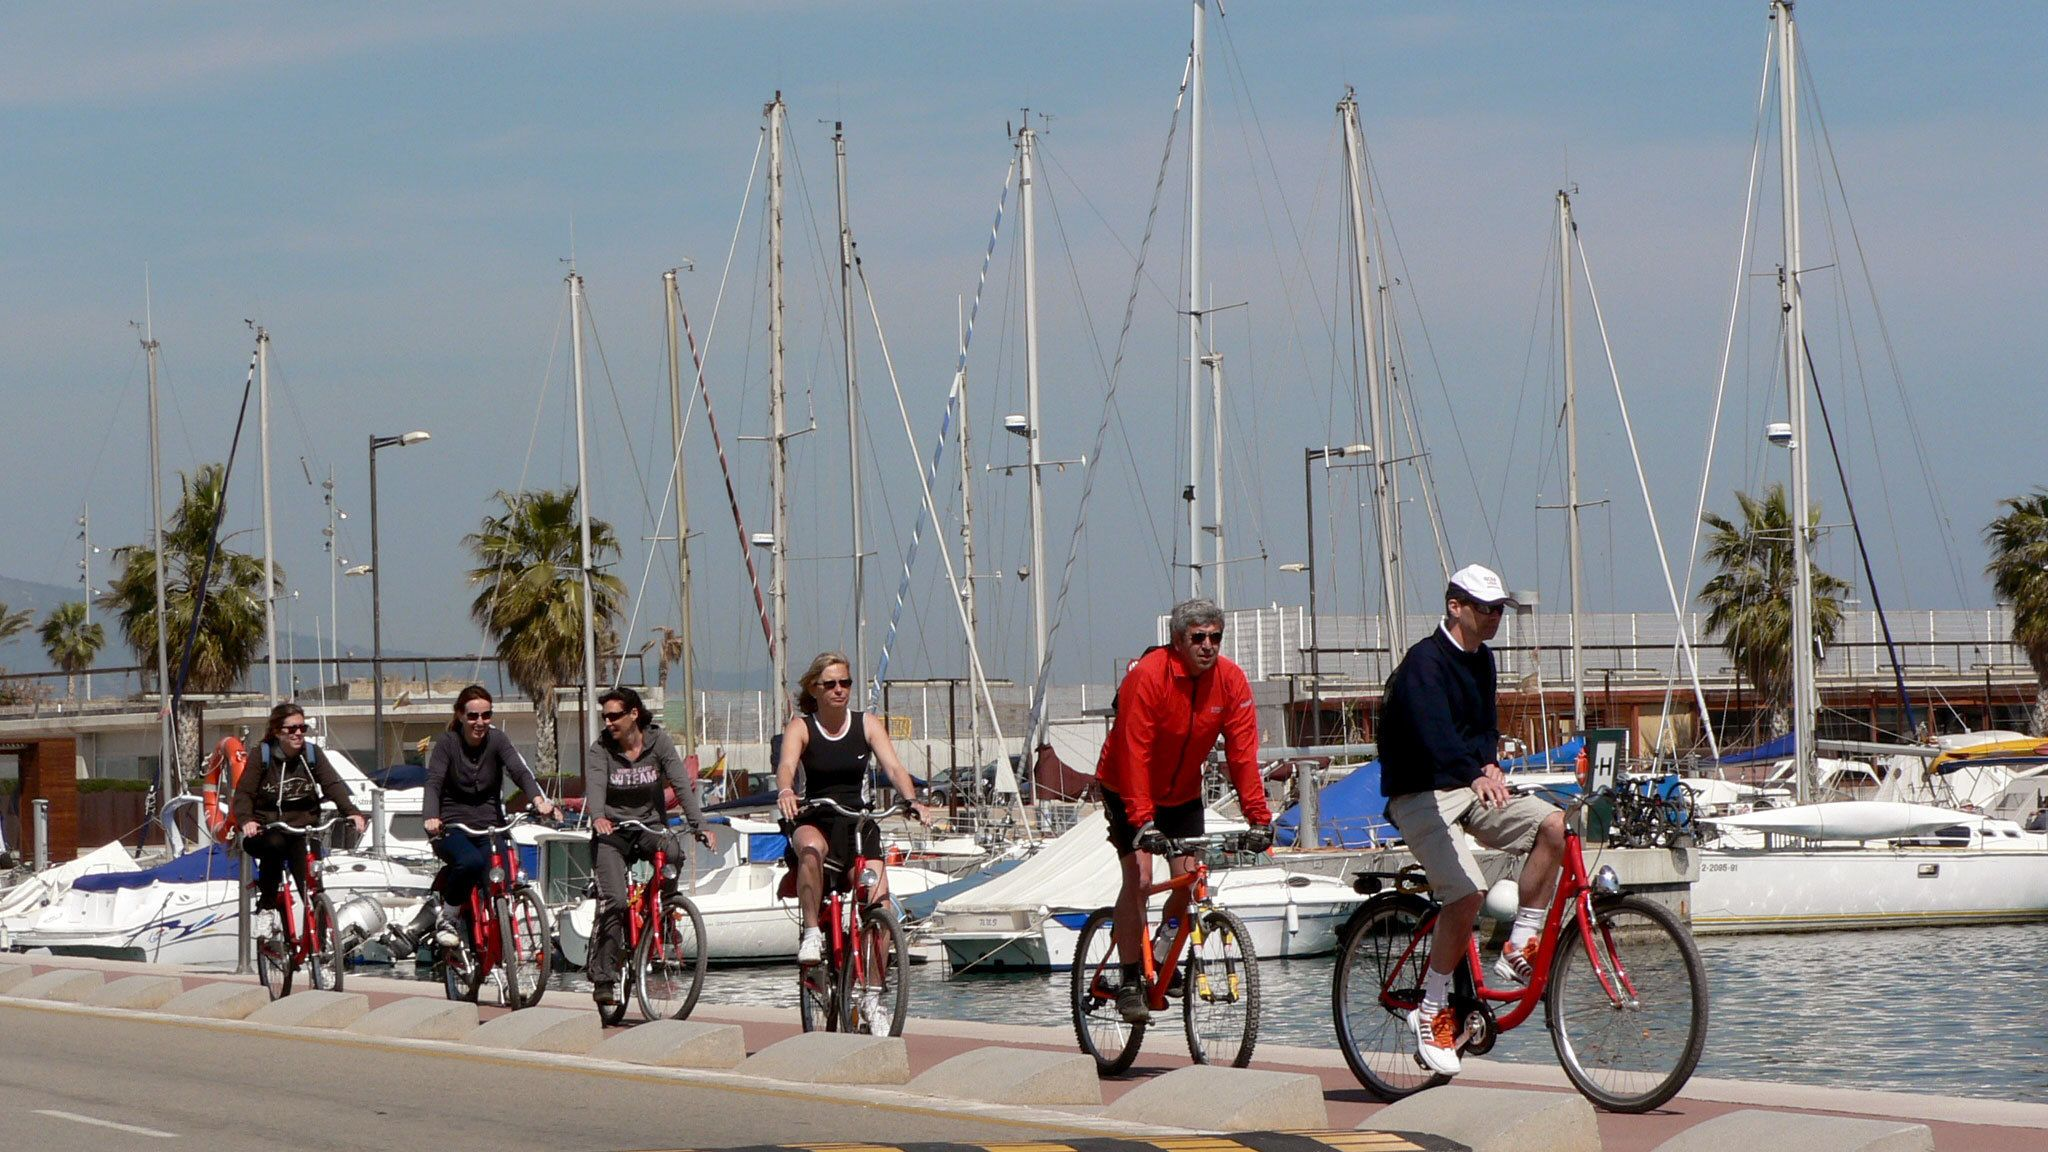 six people riding bikes by waterfront in Barcelona